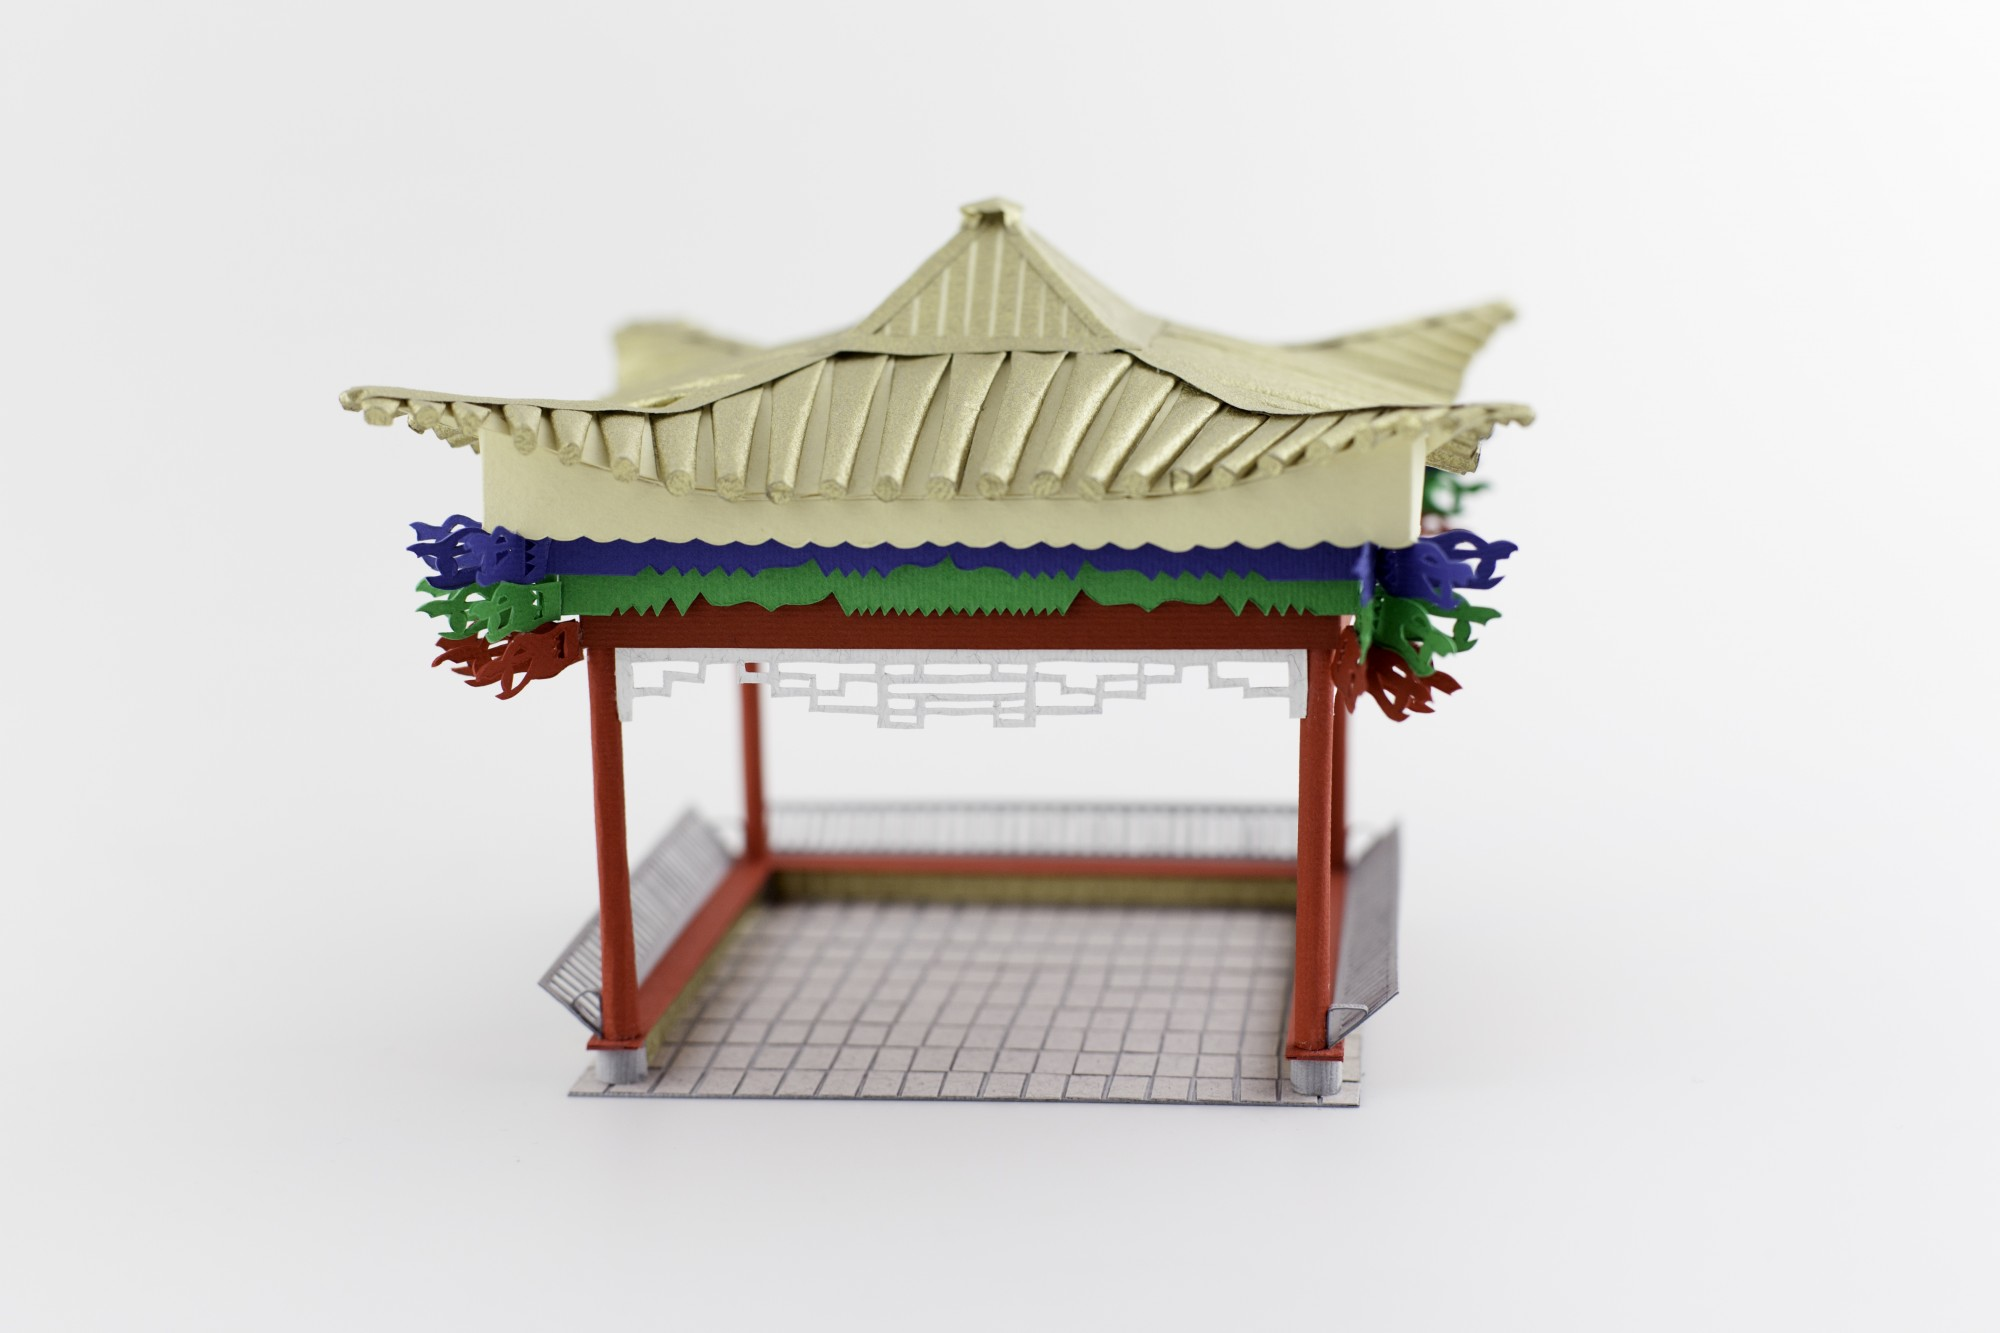 3D Letters for Silk Road Film Festival Crafted From Paper - China Pavillion